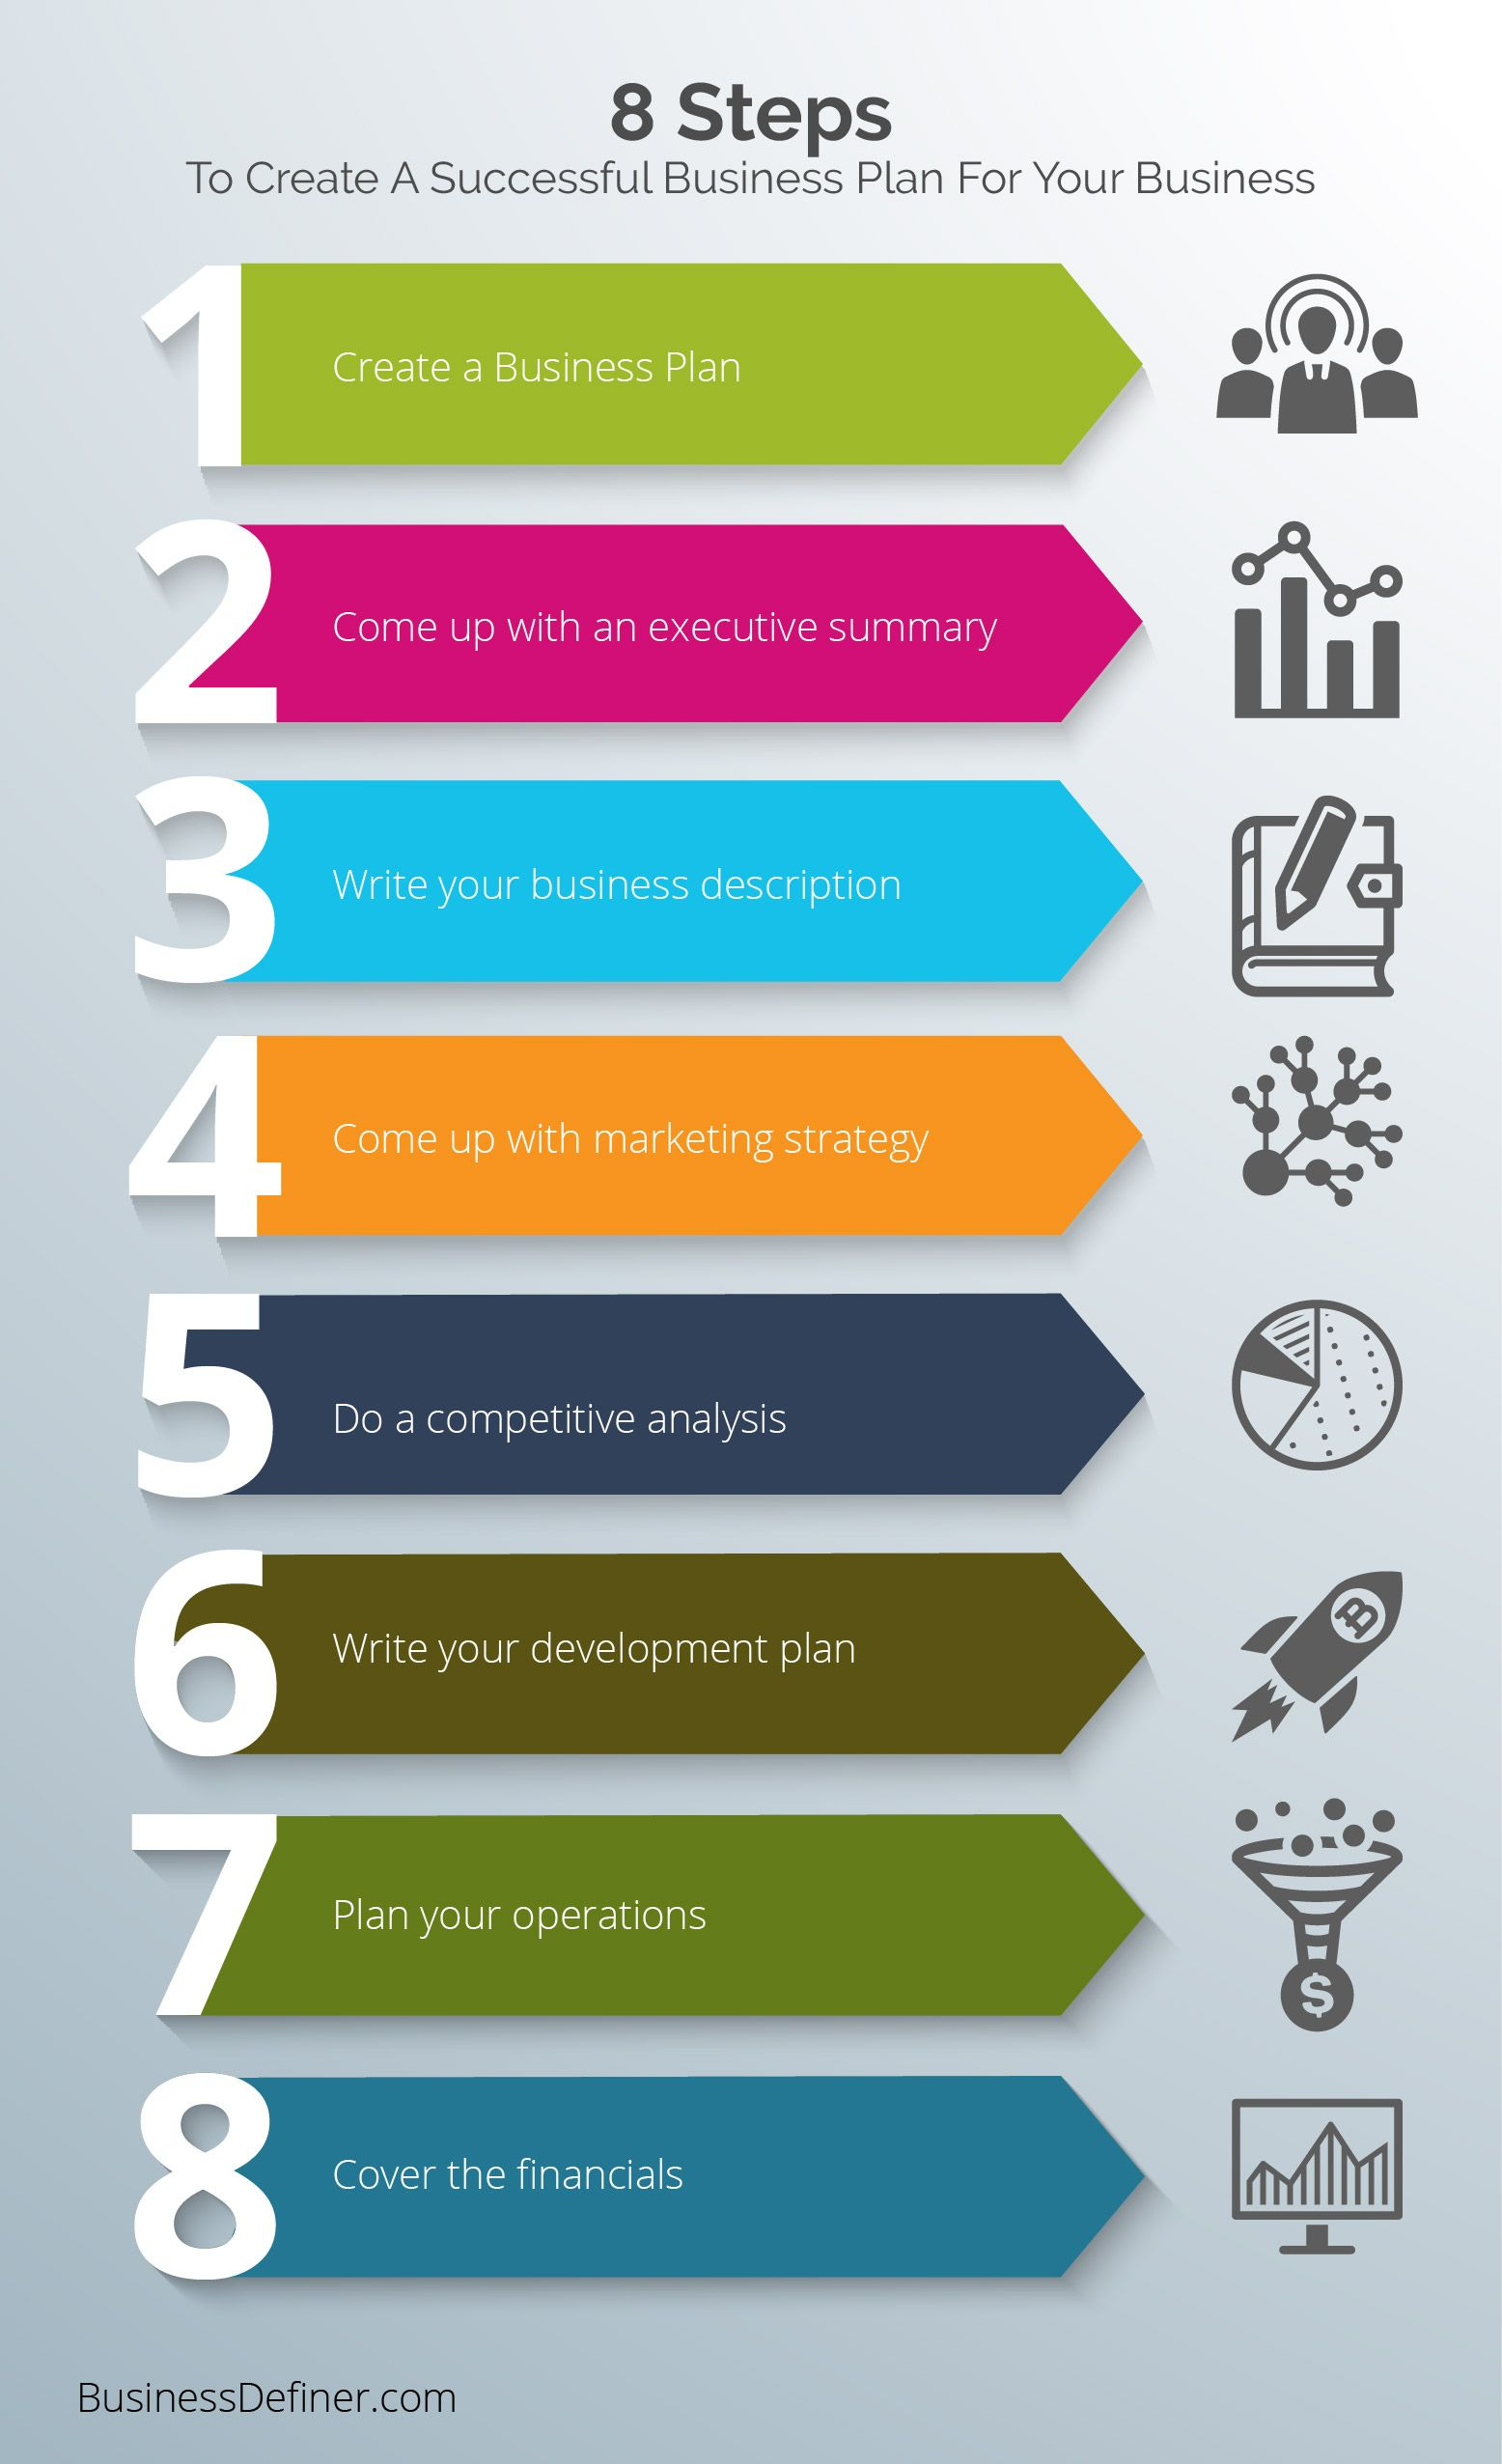 Httpbusinessdefinerhow to start a business in india httpbusinessdefinerhow to start a business in india check this info graphic indicating the 8 most important things that make a business plan friedricerecipe Choice Image